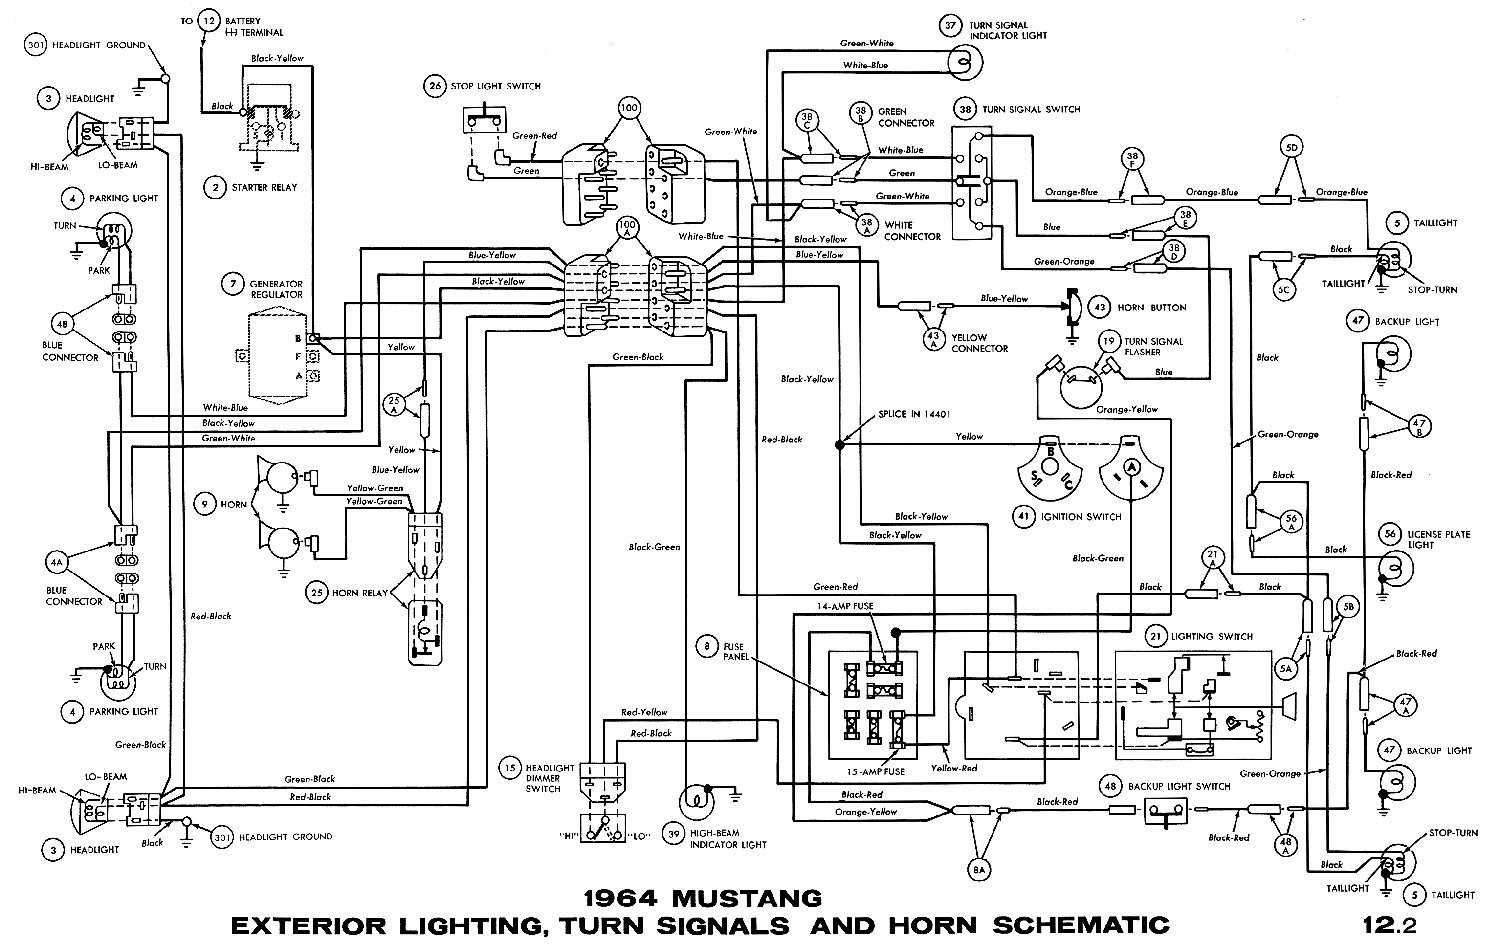 1999 Ford Mustang Turn Signal Wiring Diagram Wire Data Schema 1970 F 250 Center U2022 Rh 45 77 184 10 1992